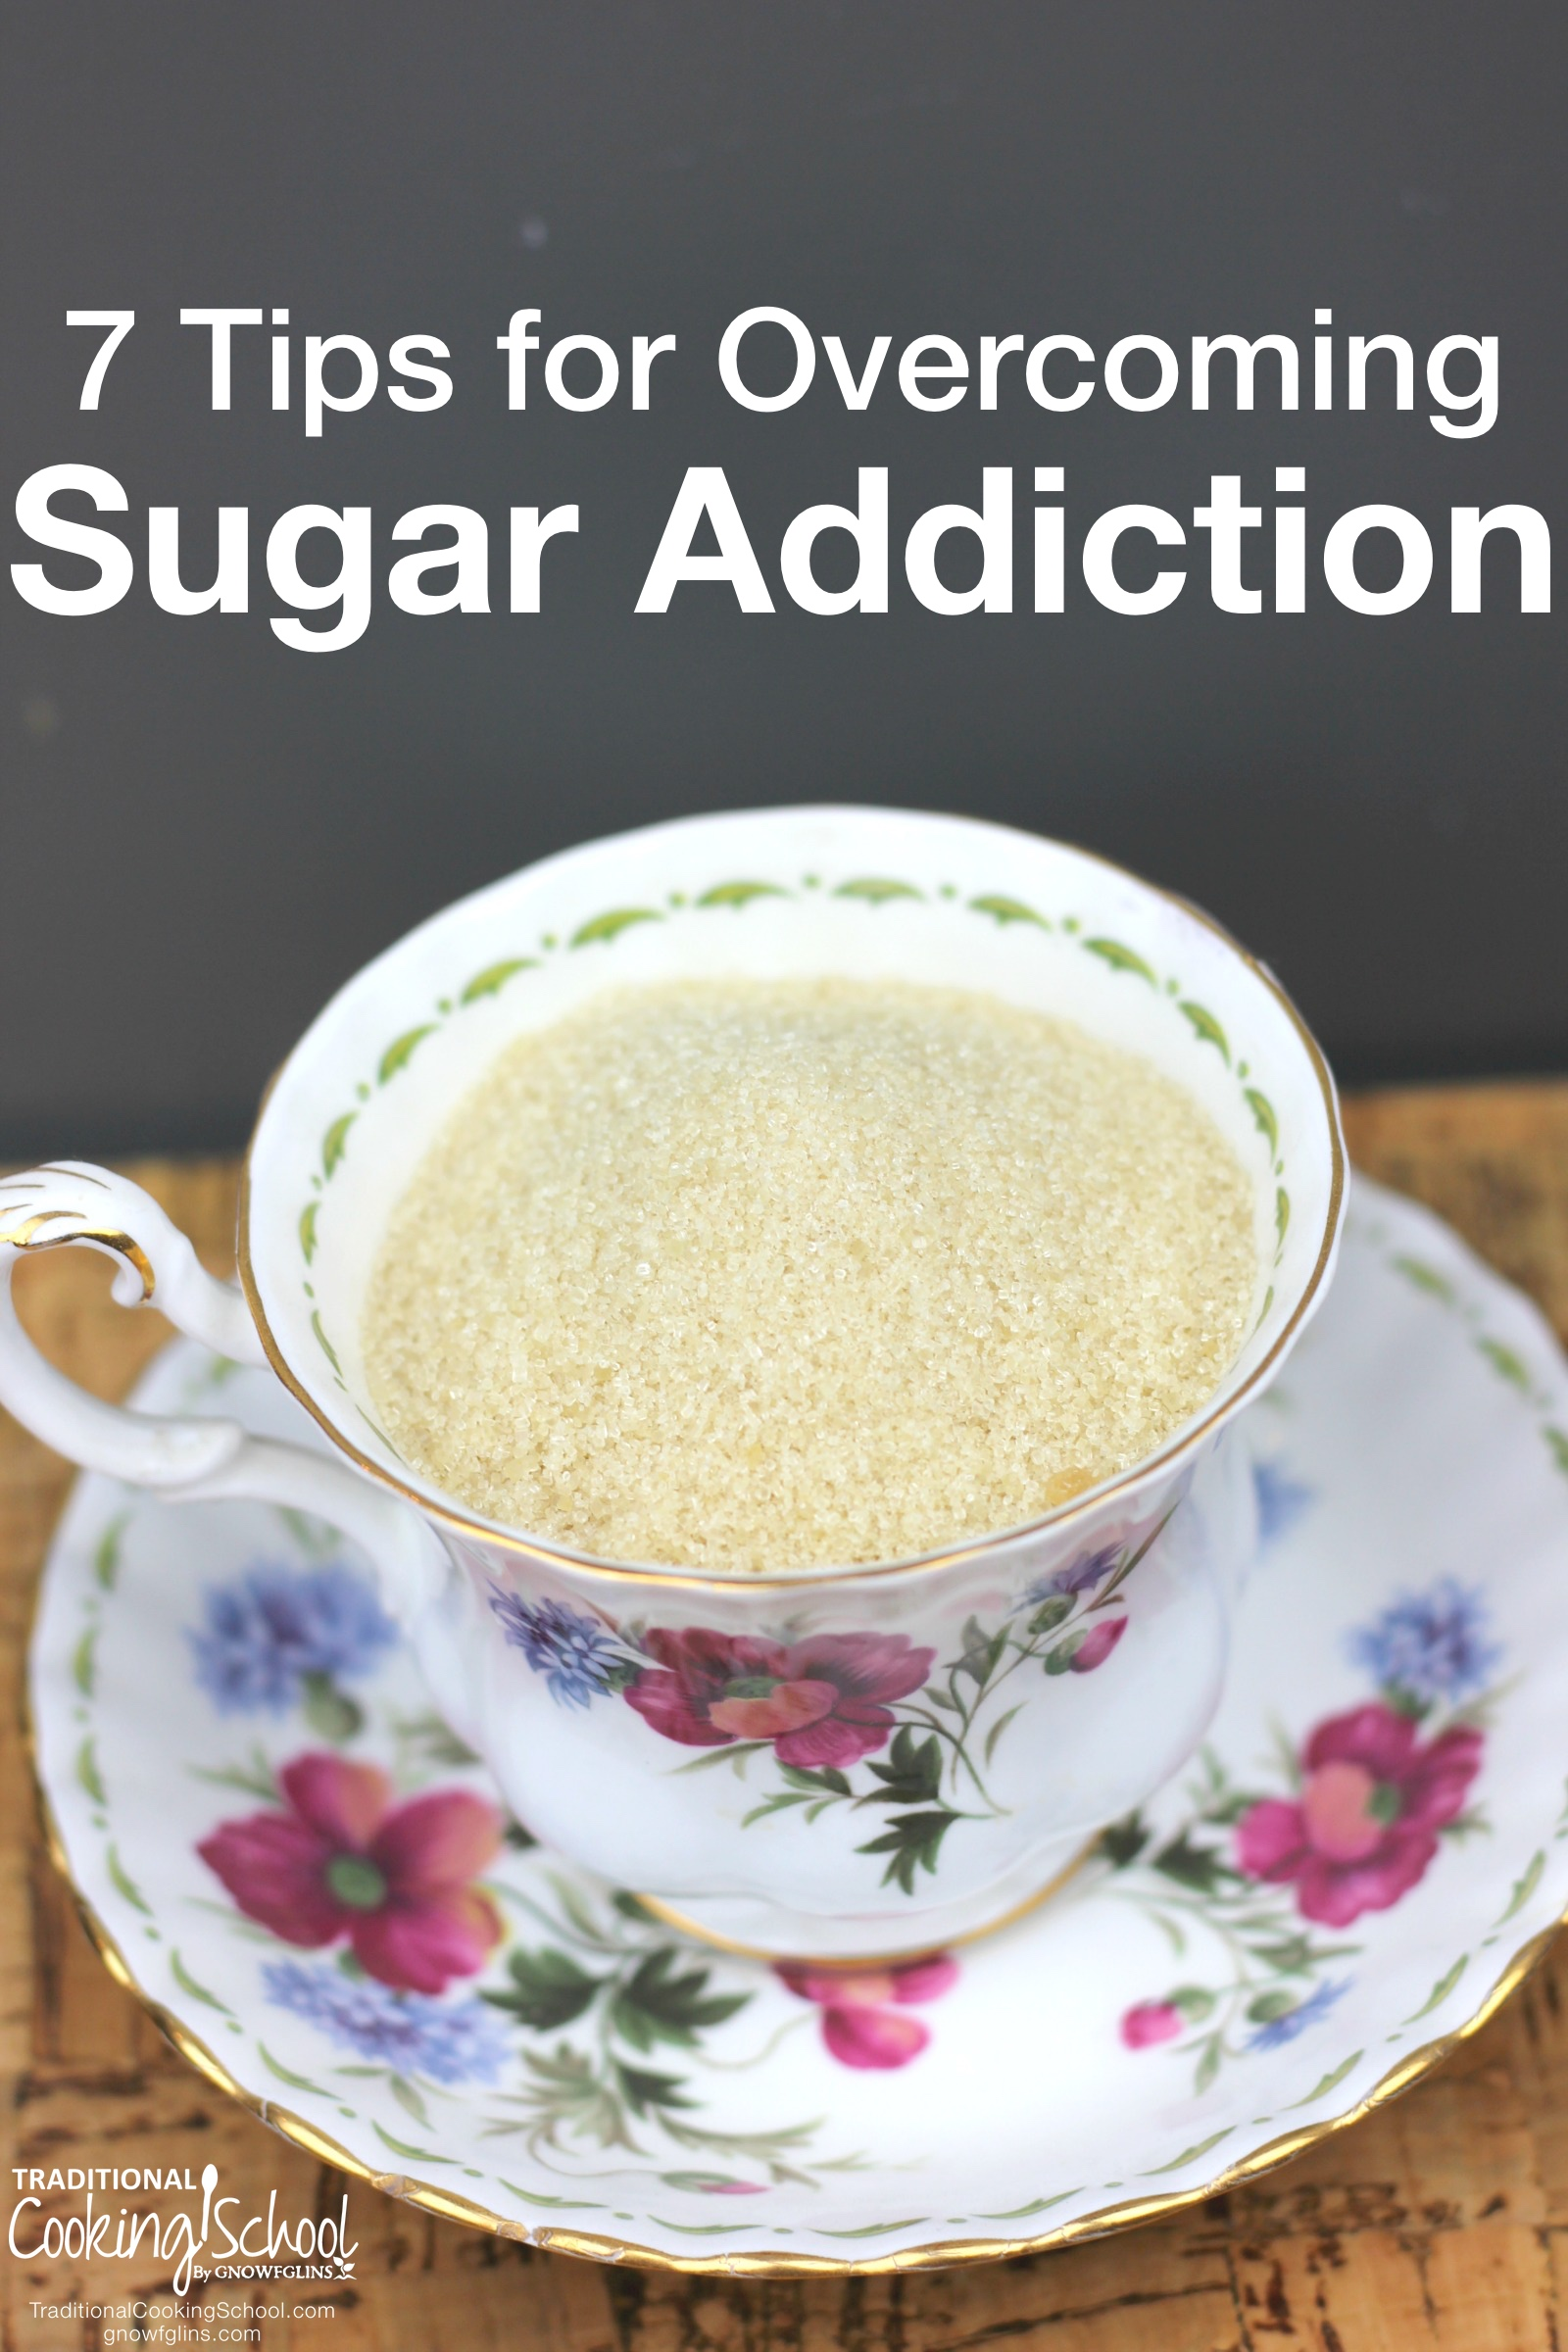 7 Tips For Overcoming Sugar Addiction | Many of us suffer from slavery to sweets -- which sabotages our thoughts, dental health, gut ecosystem, and overall wellness. It took 3 full years for my sugar addiction to go away. I never cheated, but I still craved what I could not have. Now, my sugar addiction is gone, and the cravings have never returned! I hope these insights will make your journey as successful as mine -- and much faster. | TraditionalCookingSchool.com